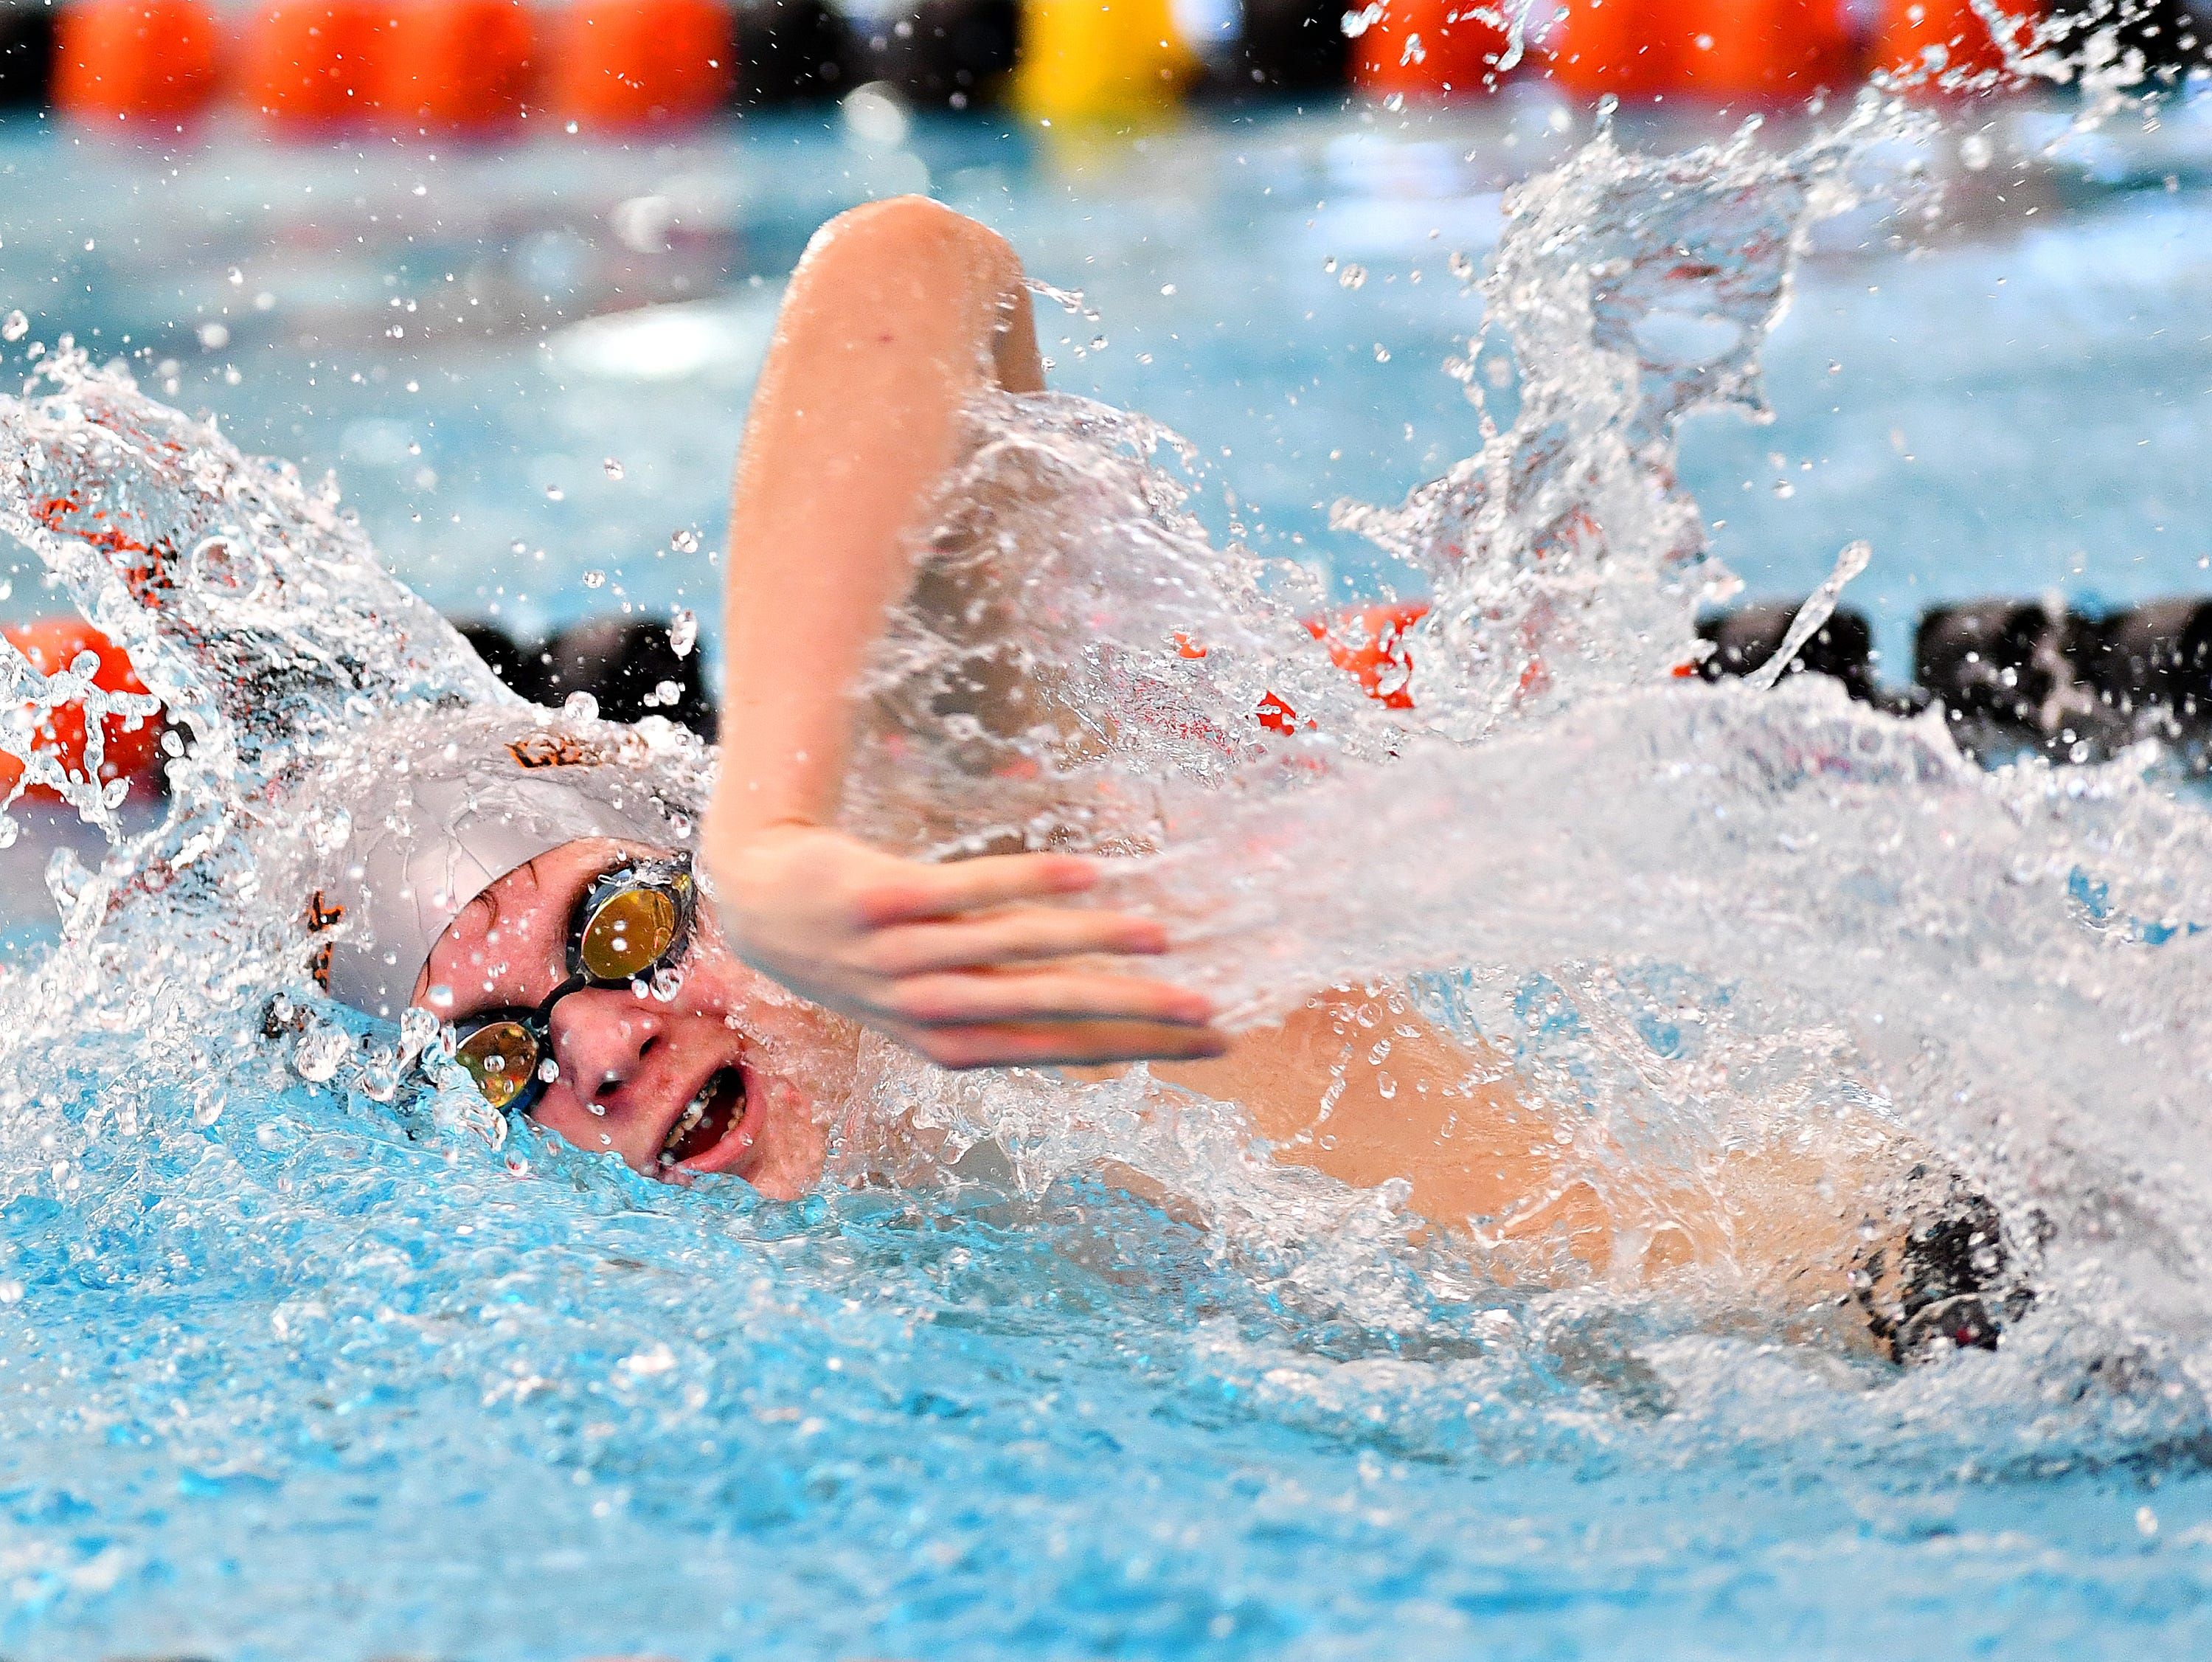 Central York's Nathan Dundas competes in the 400 Yard Freestyle Relay event during the York-Adams League Swimming Championship at Central York High School in Springettsbury Township, Saturday, Feb. 9, 2019. Dawn J. Sagert photo